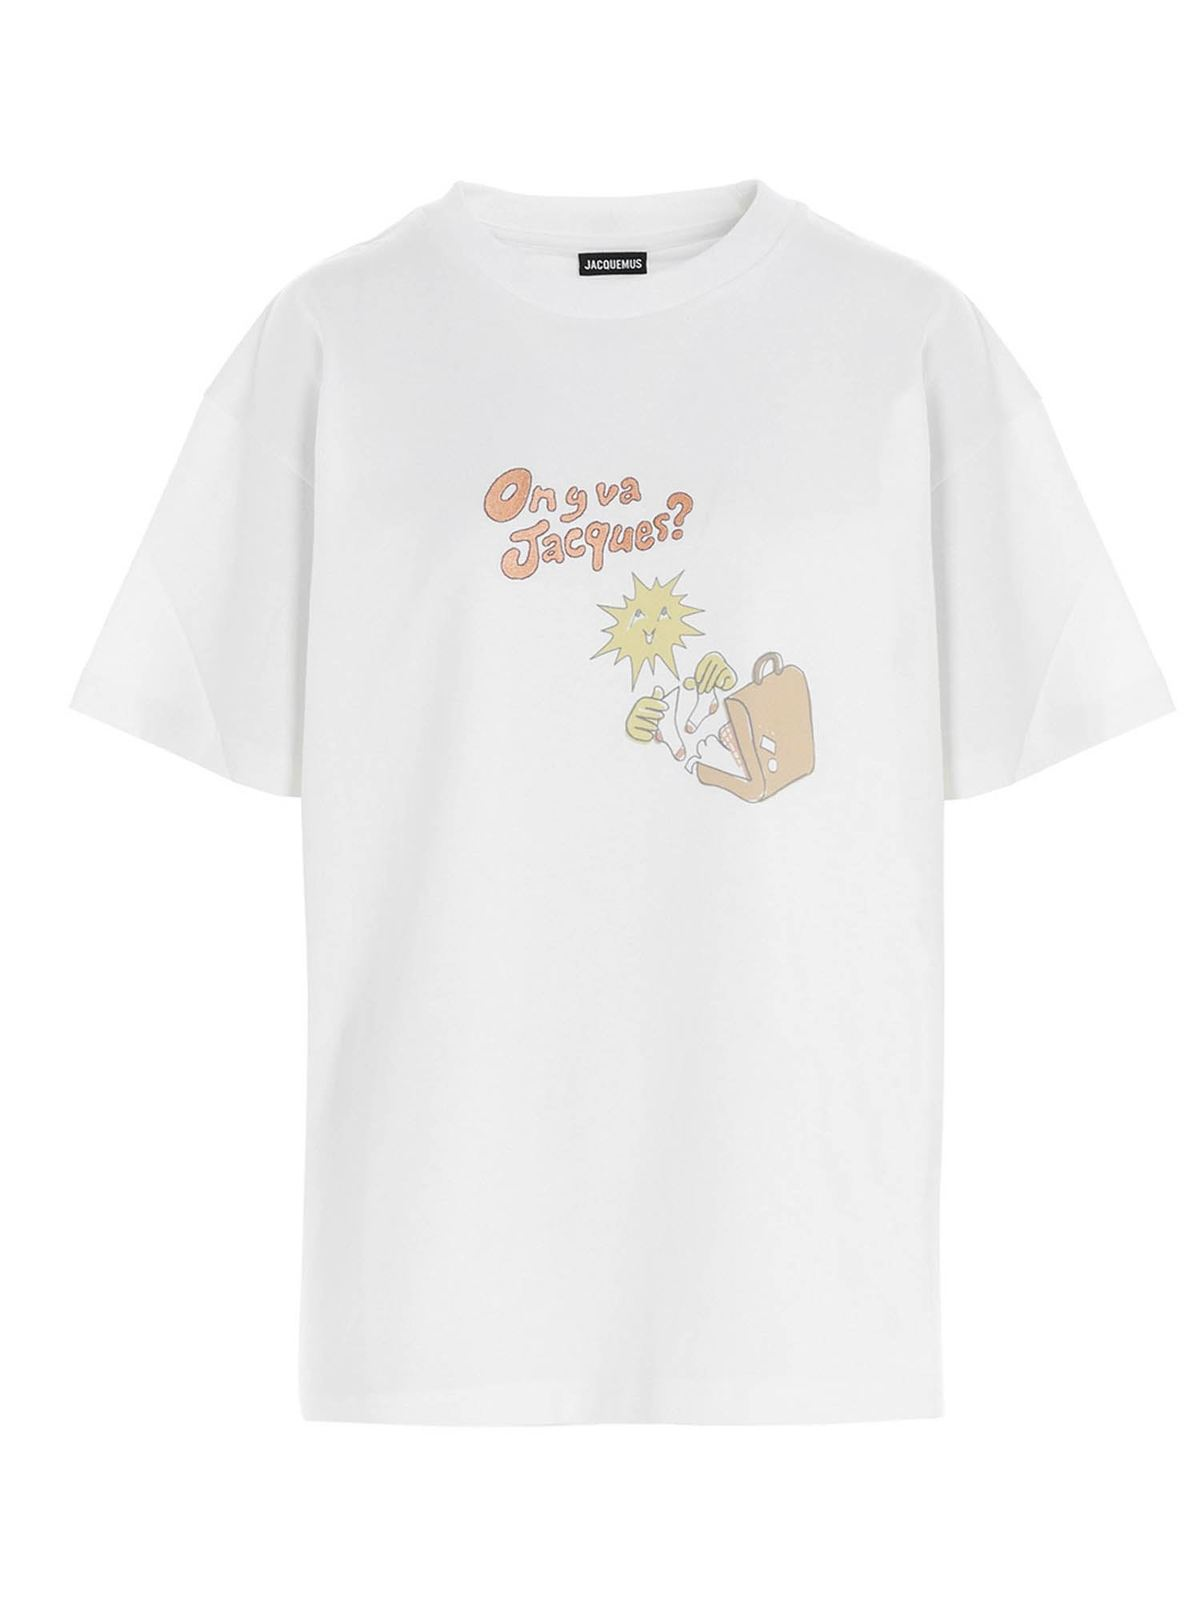 Jacquemus BONNE NUIT JACQUES T-SHIRT IN ORANGE